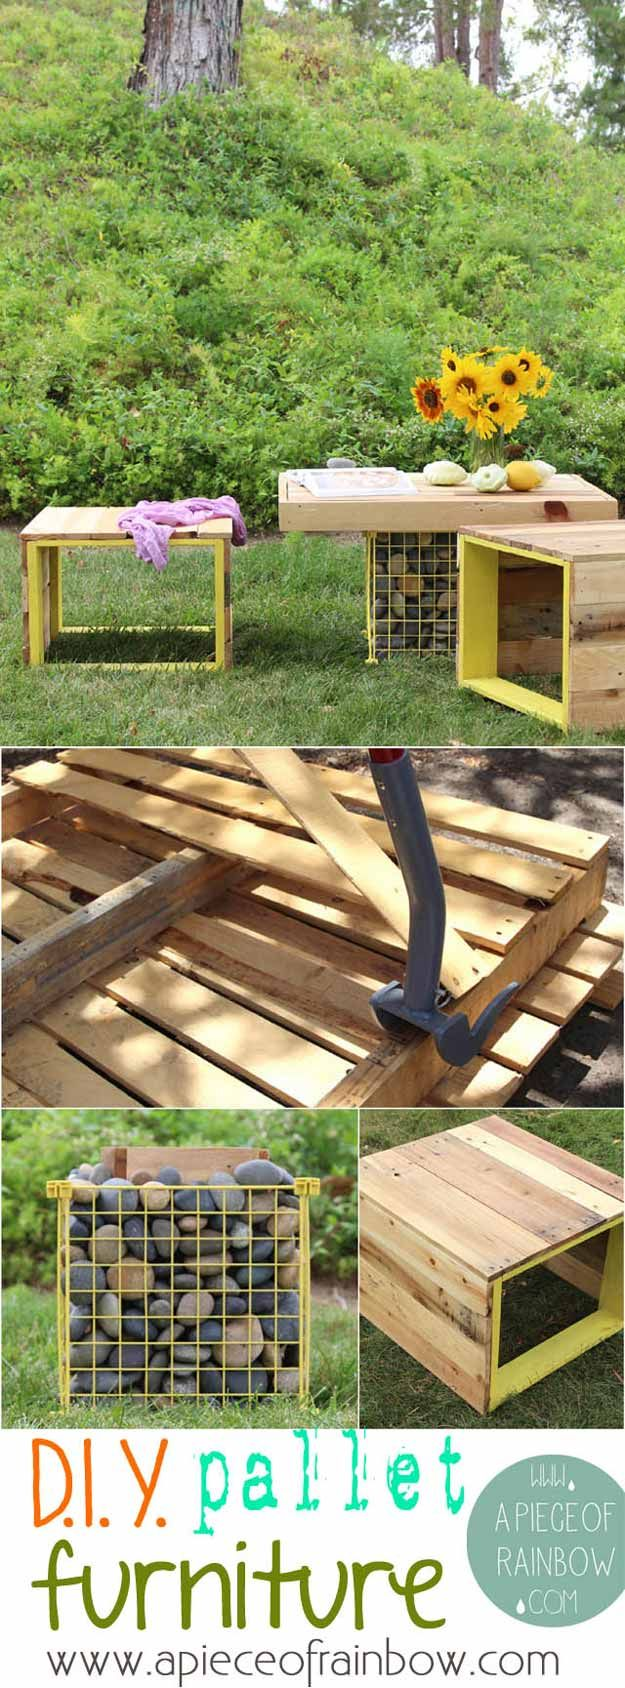 1770 best wood 2 images on pinterest wood wood projects and